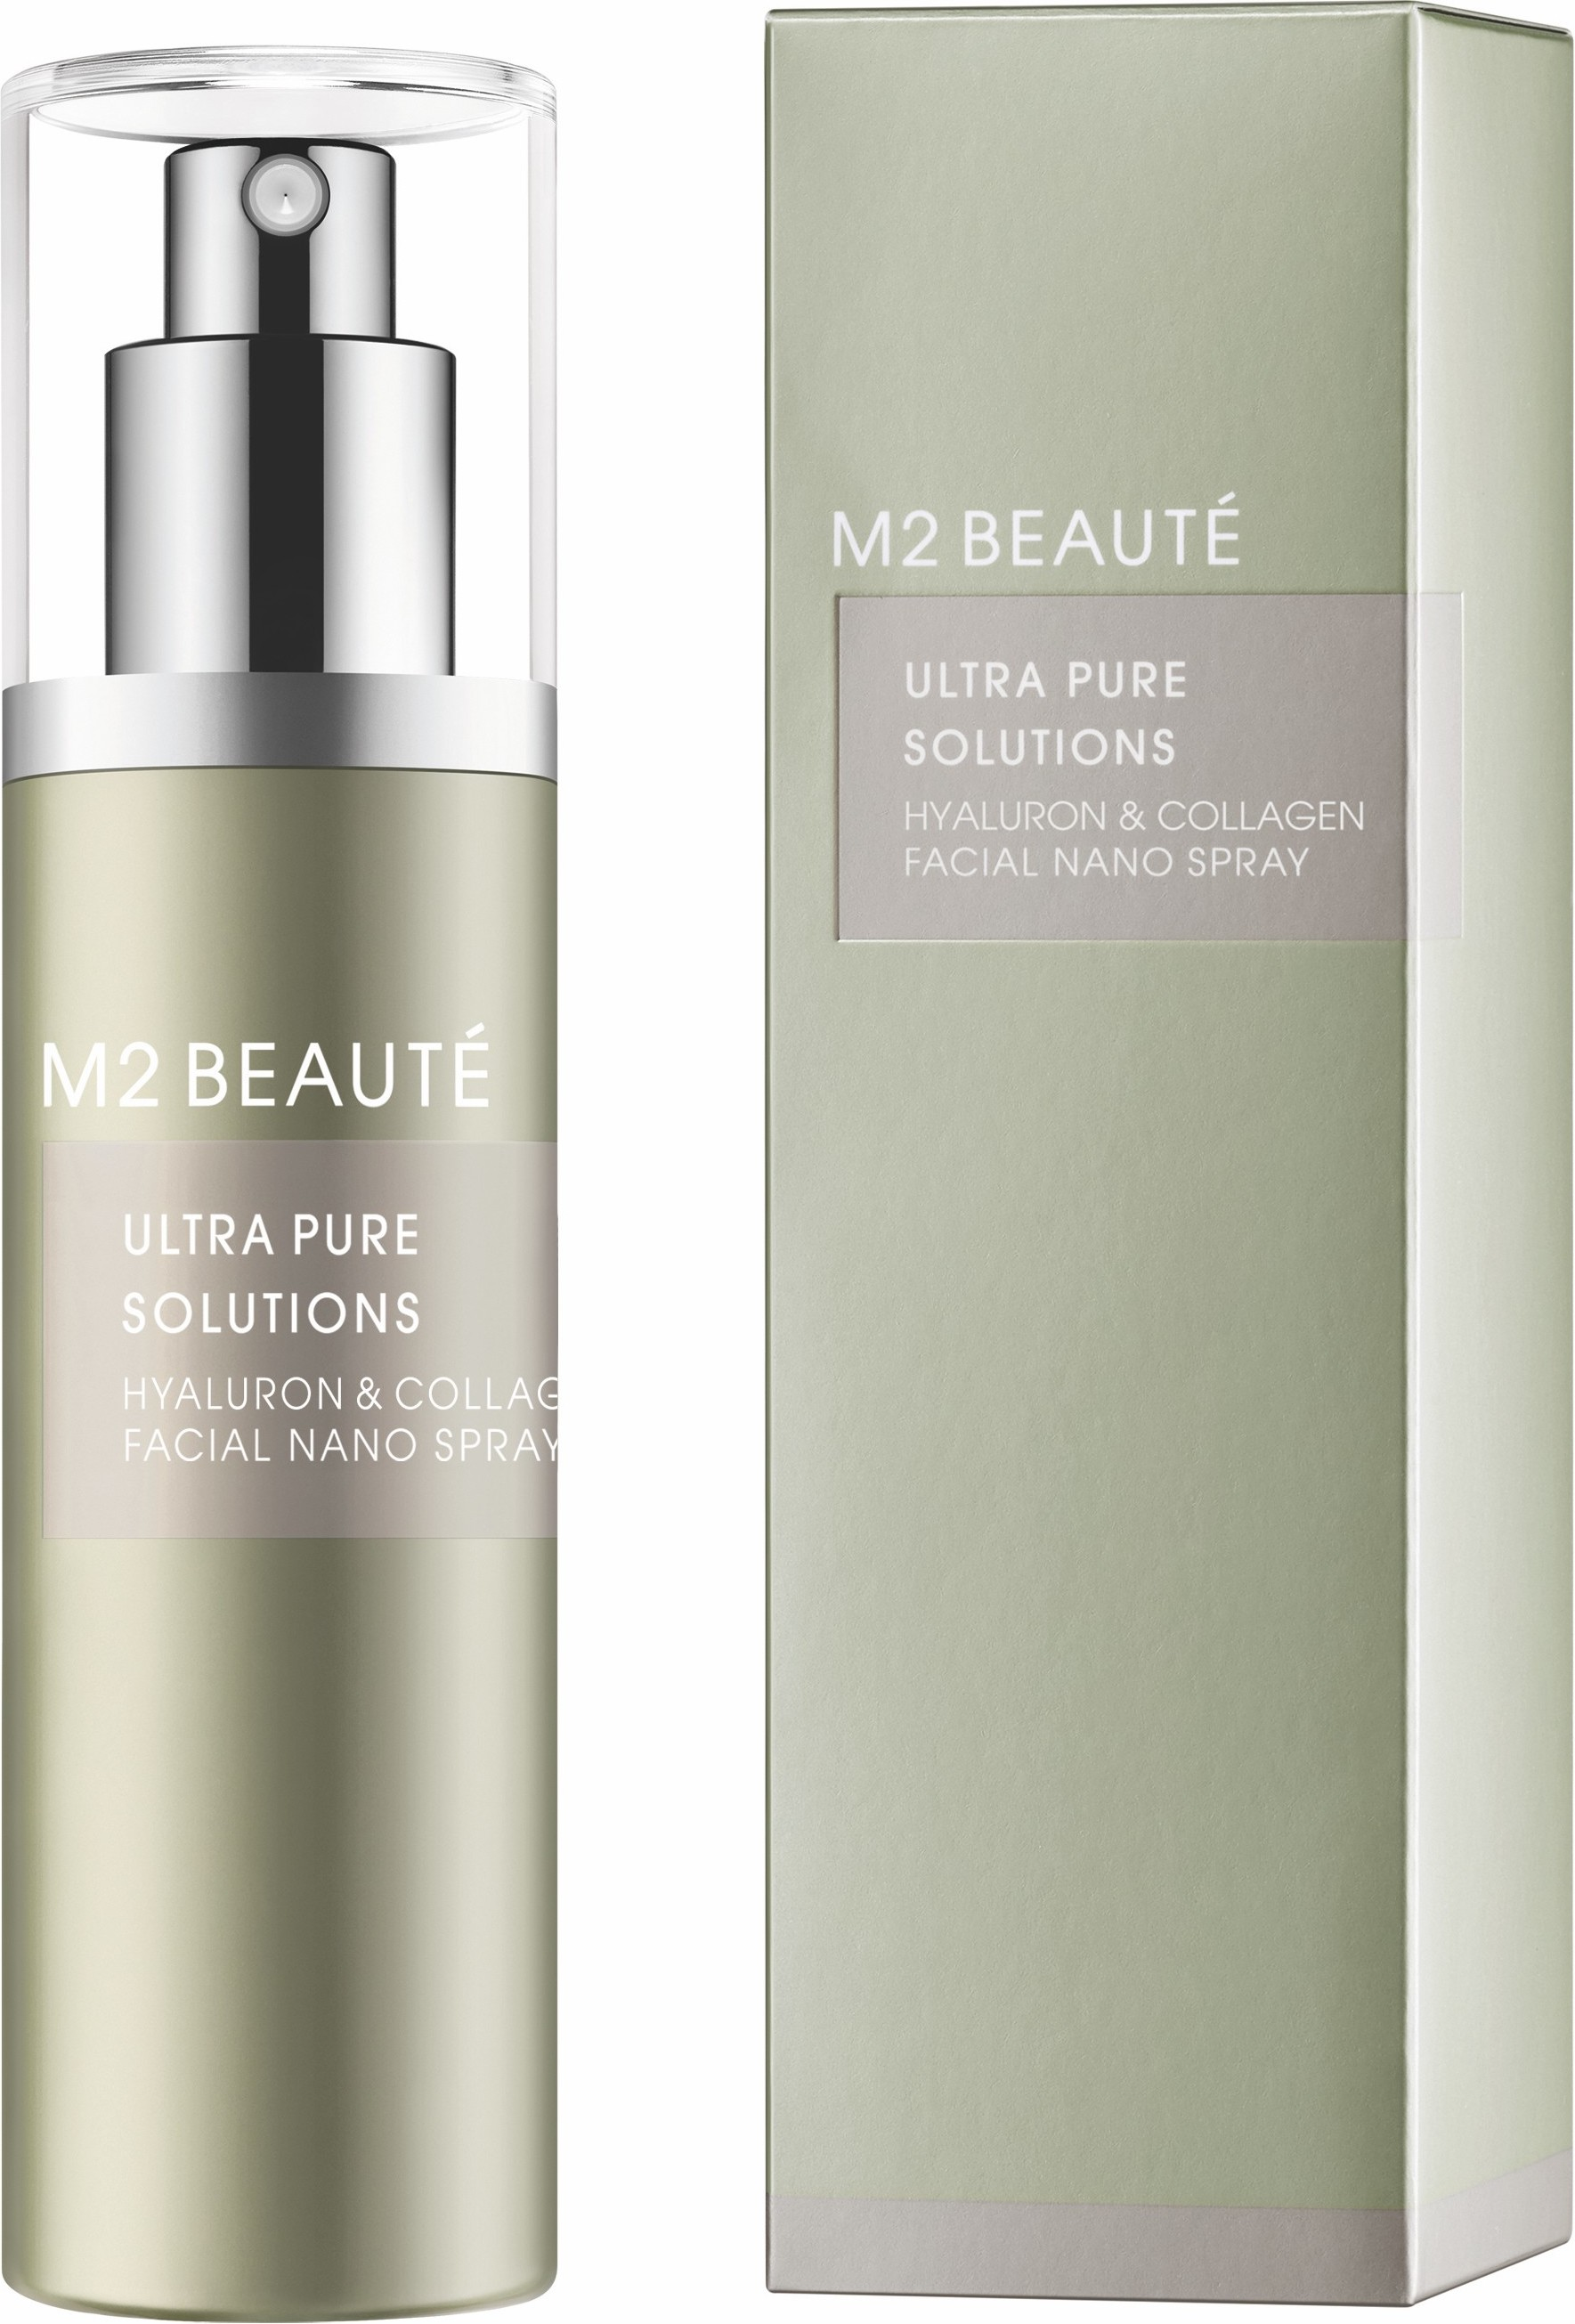 M2 Beauté Ultra Pure Solutions Hyaluron&collagen Facial Nano Spray Mujer